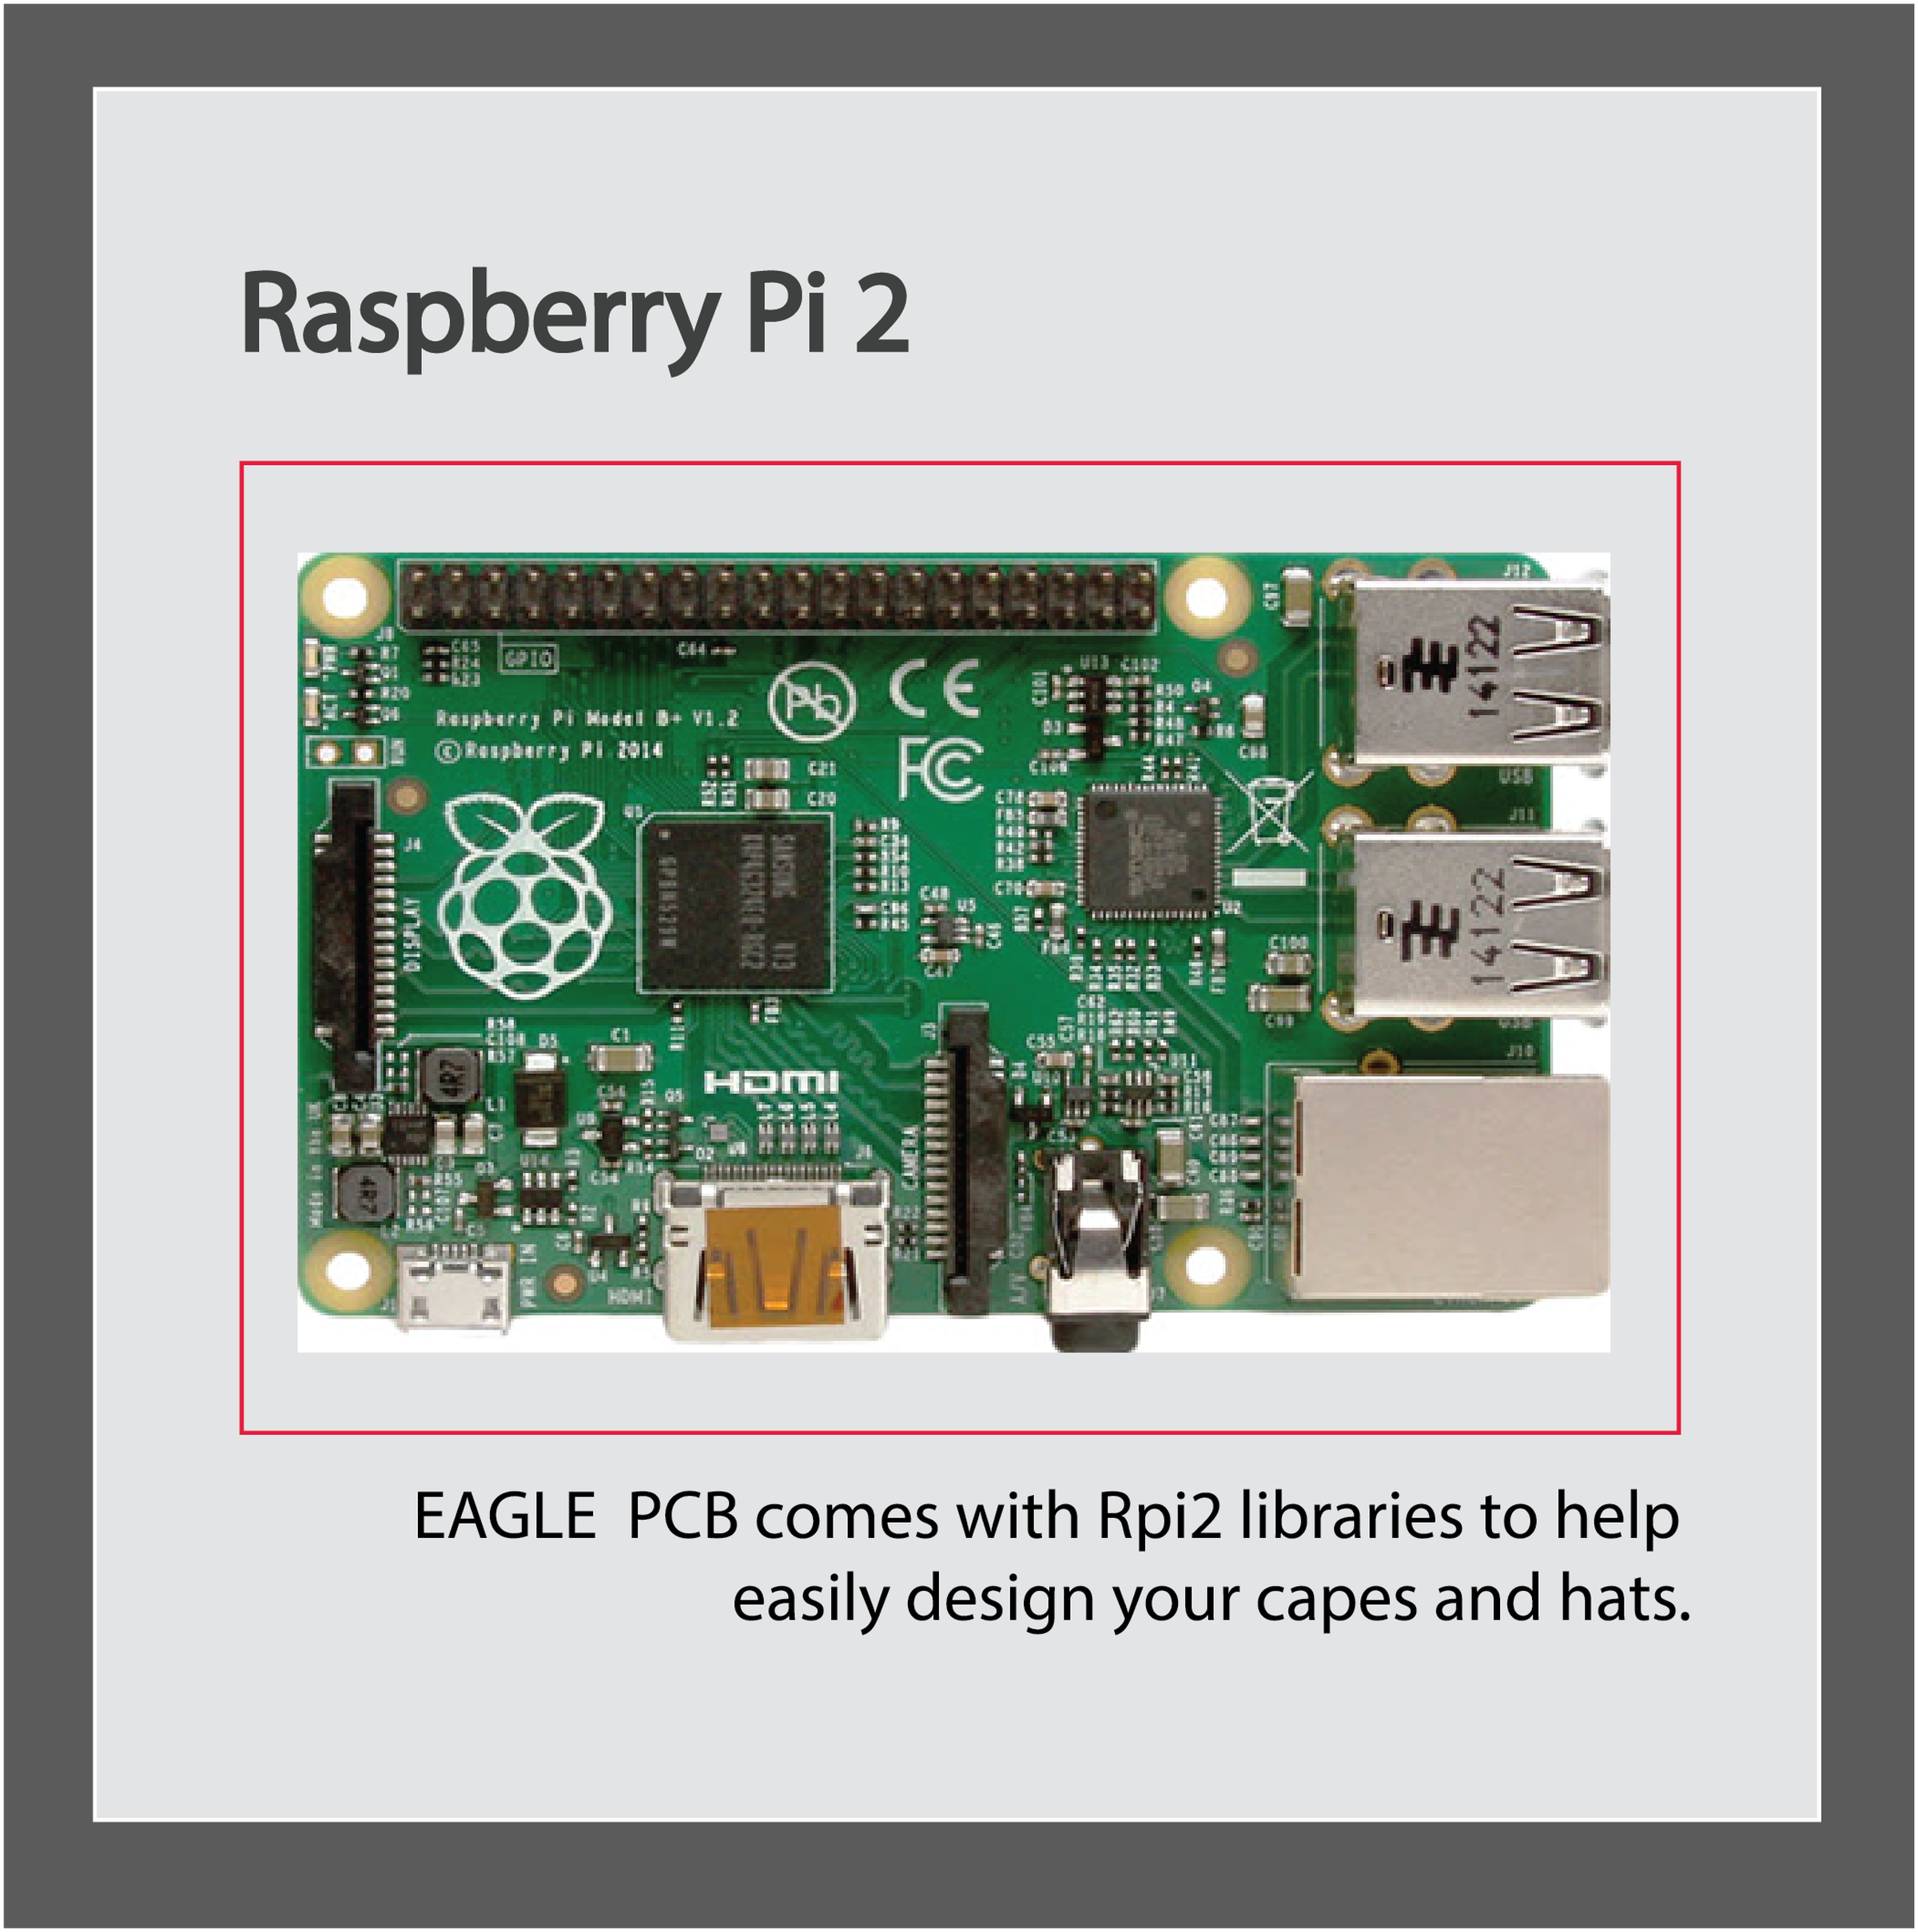 EAGLE PCB Software License & Raspberry Pi 2 Bundle from CadSoft ...